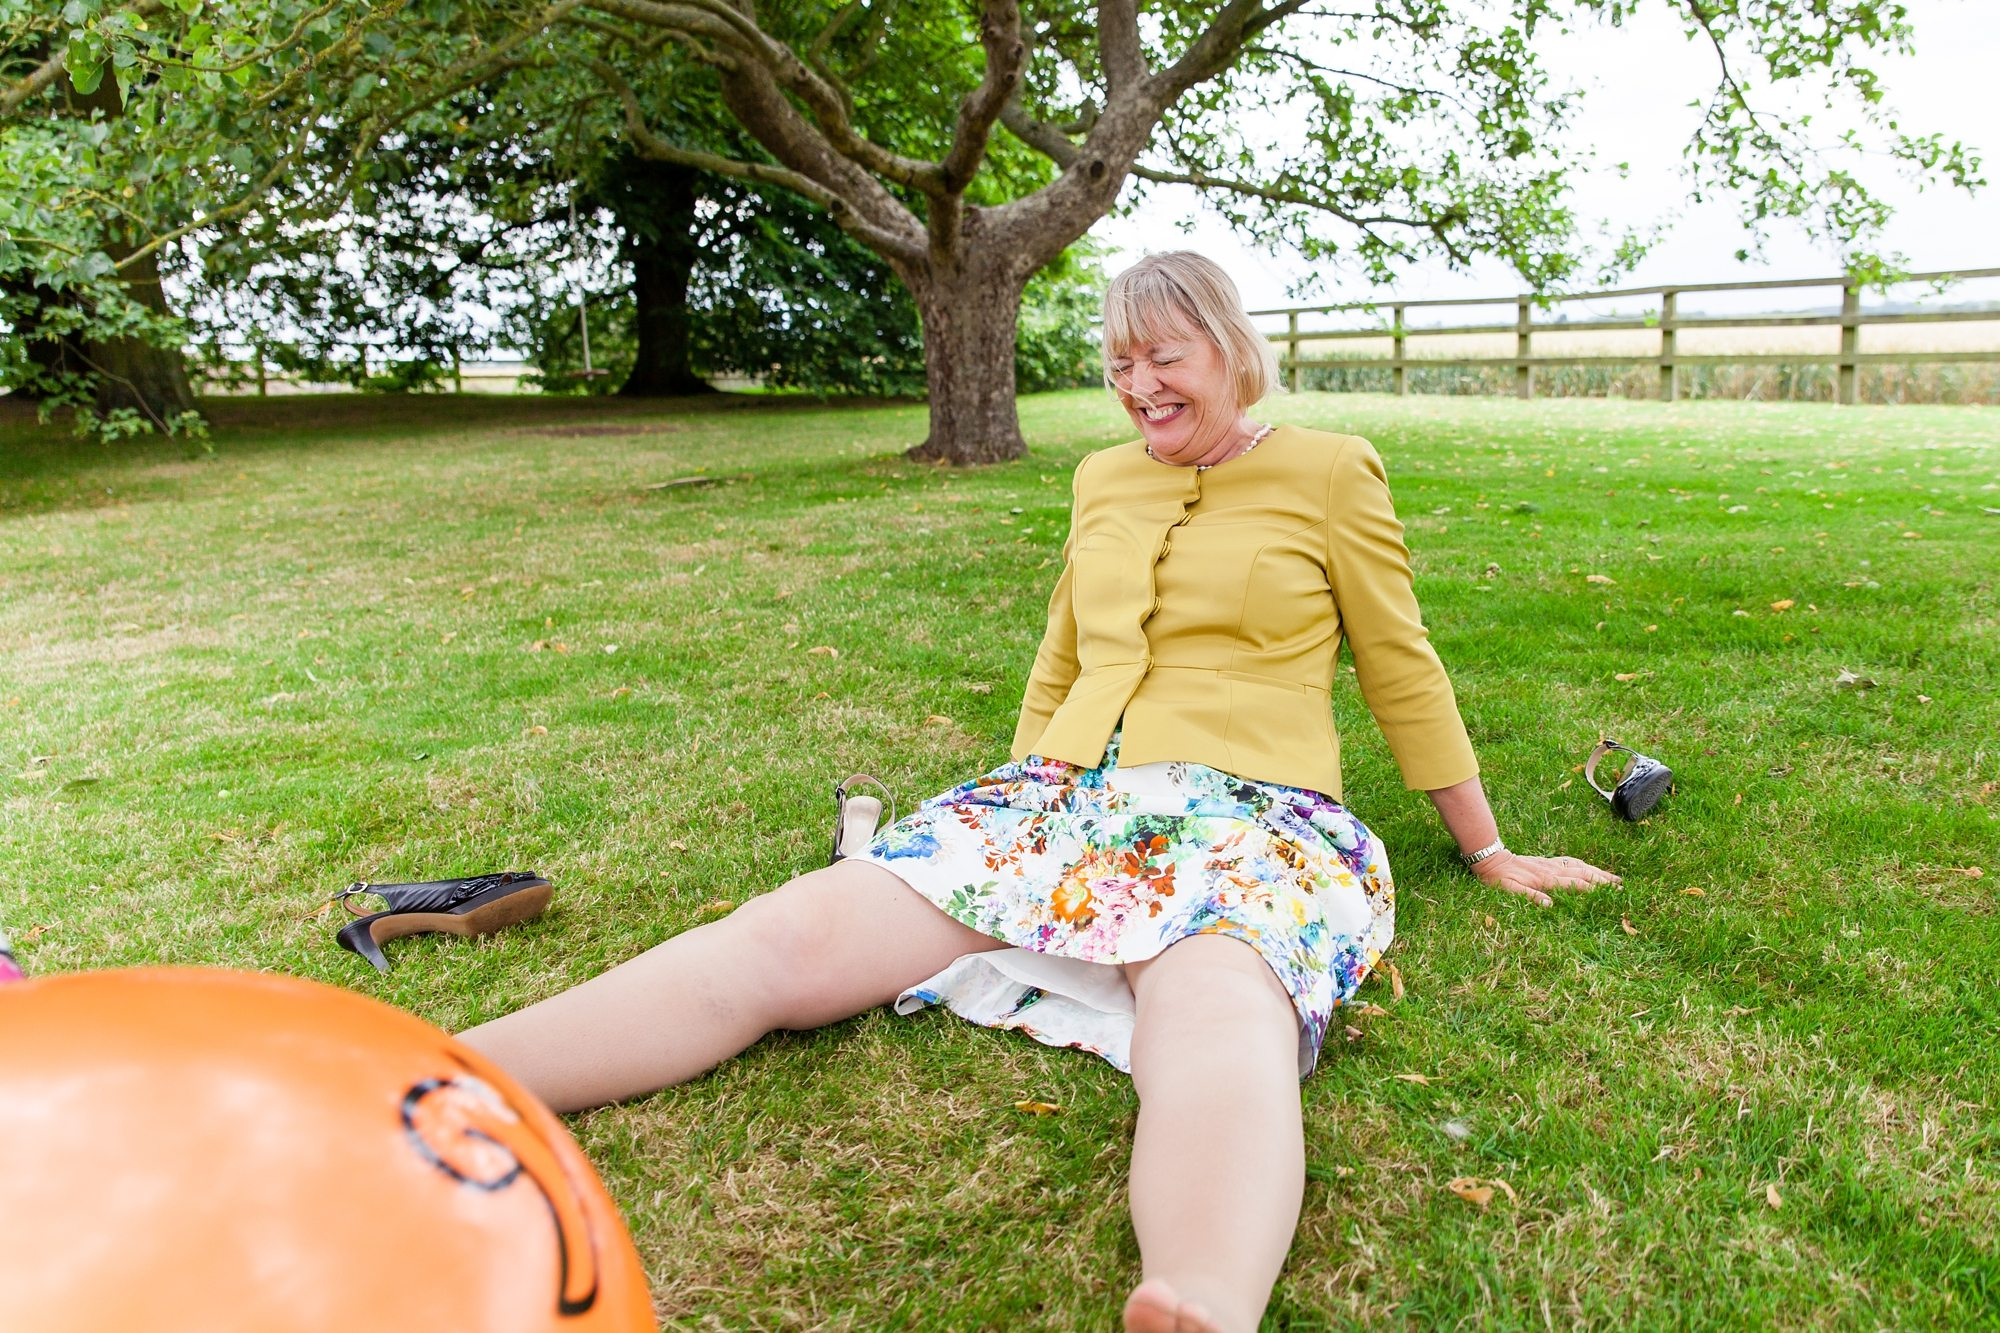 Wedding guest falling off spacehopper